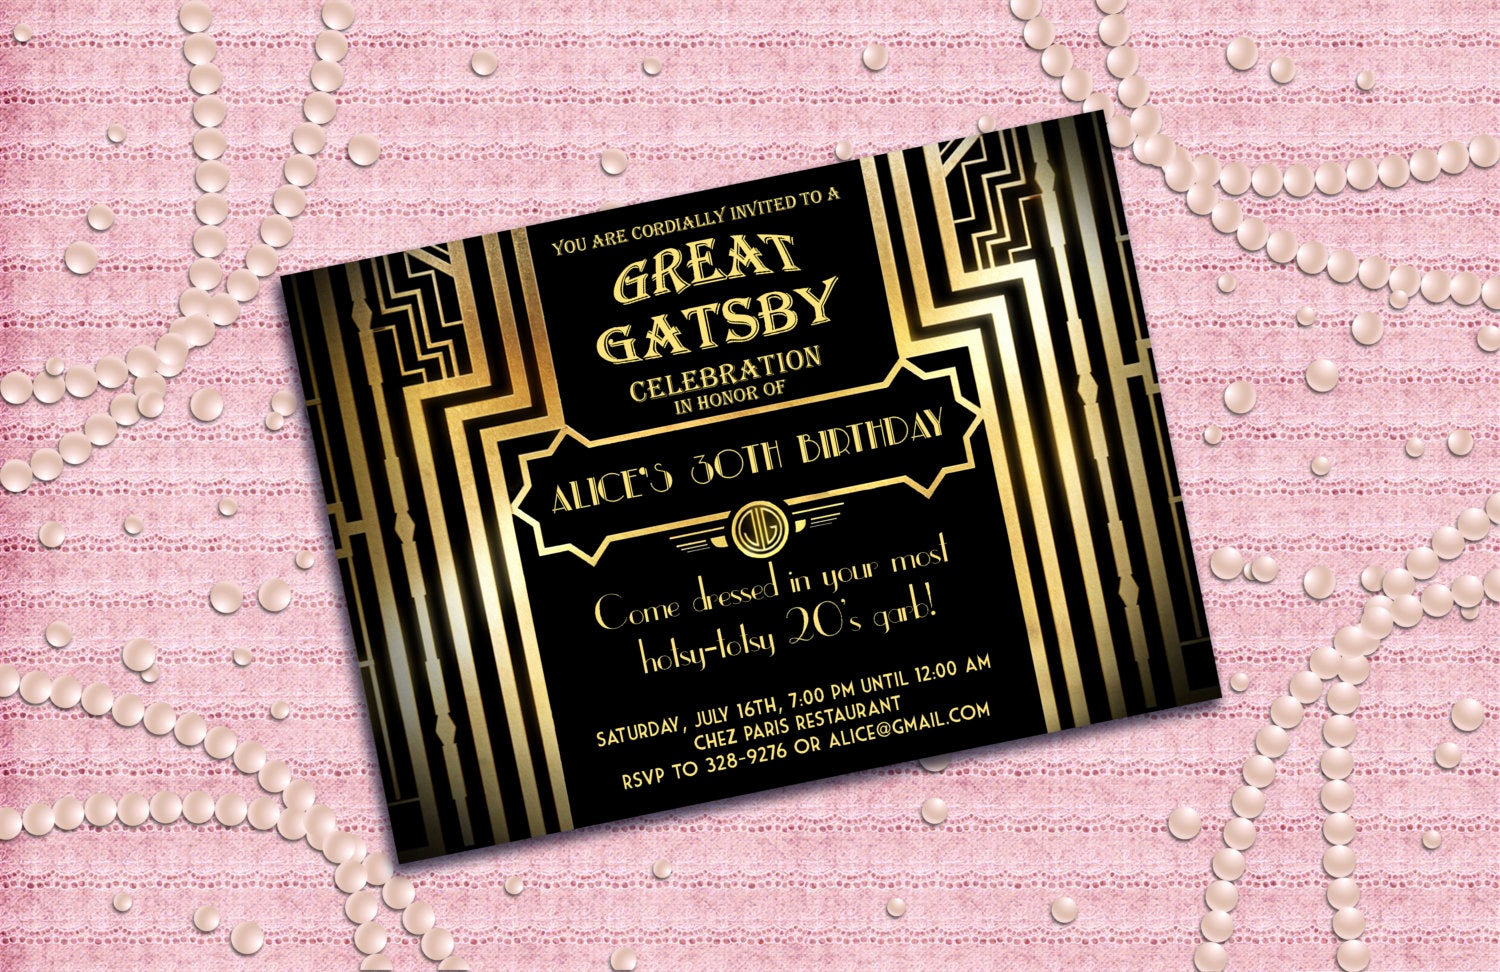 Great Gatsby Party Invitation Templates Inspirational Great Gatsby Style Art Deco Birthday Party Invitation by